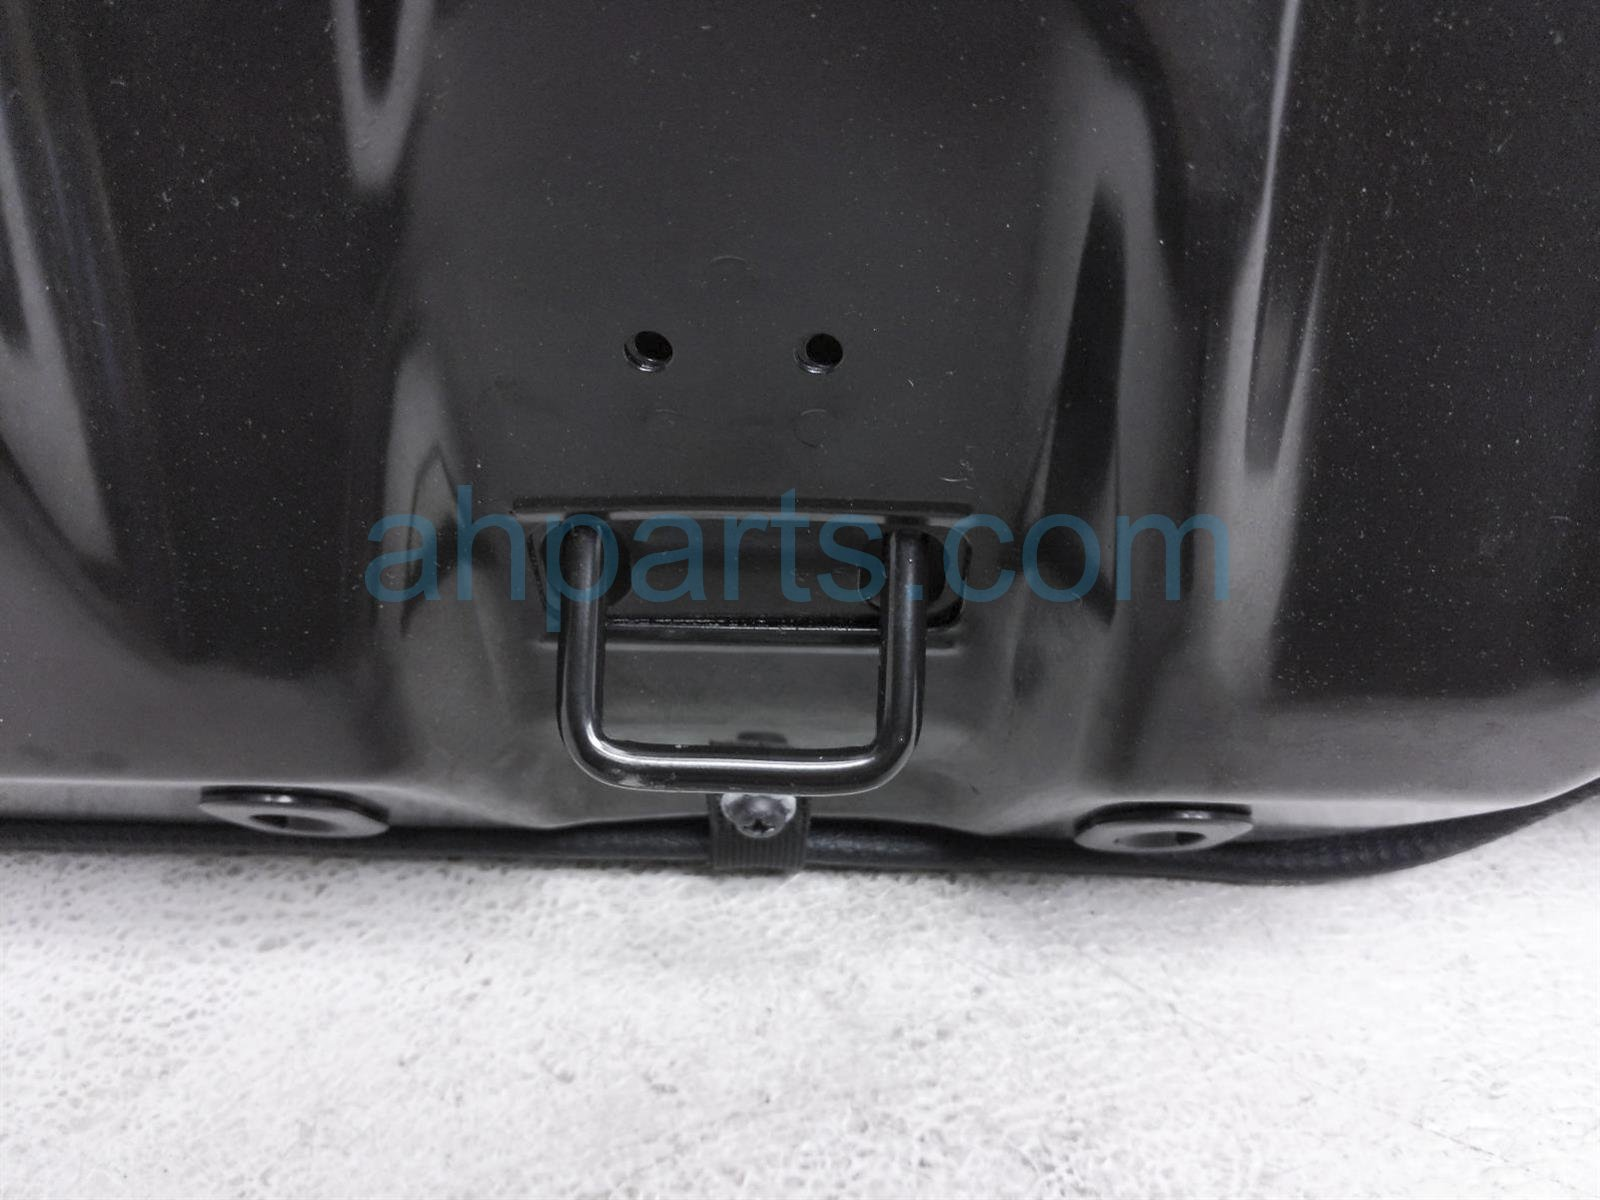 2017 Toyota Tacoma Back (2nd Row) Rear Passenger Seat Lower Portion   Black 71075 04290 C0 Replacement